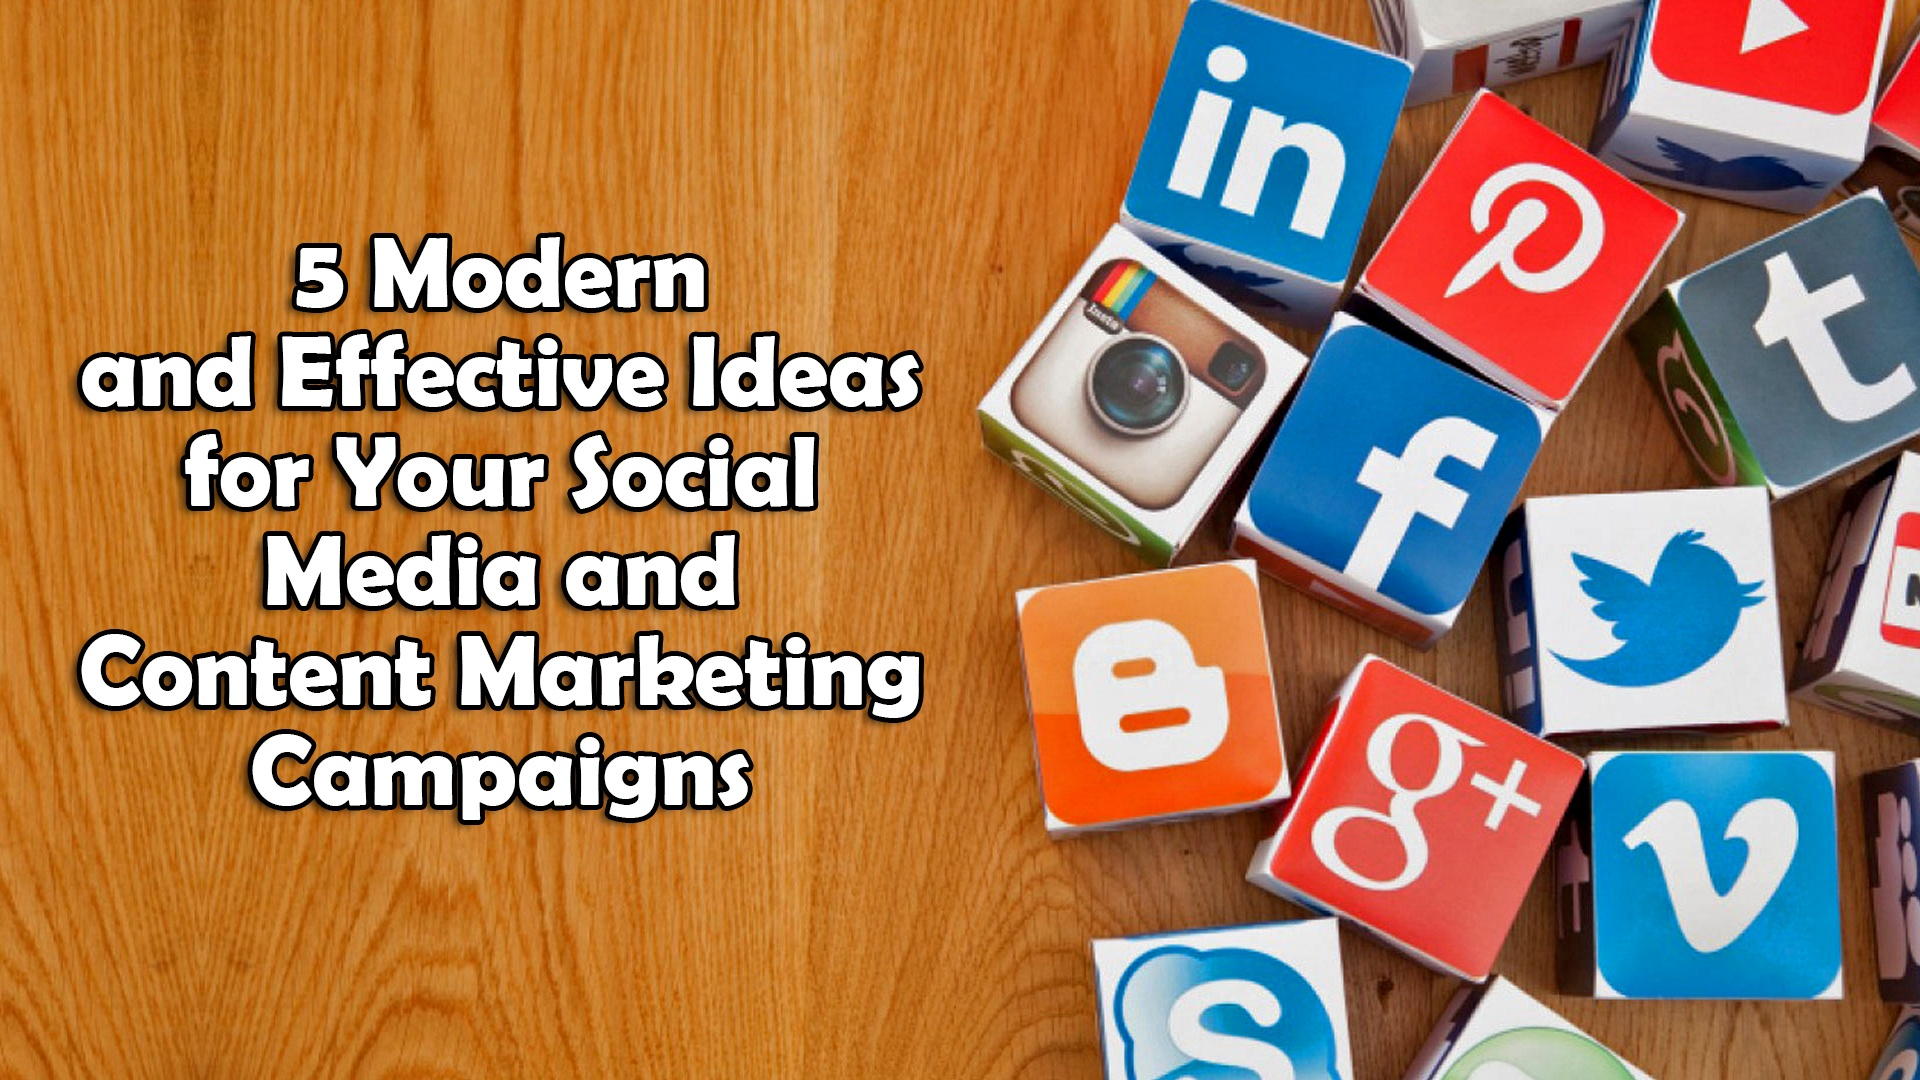 5 Modern and Effective Ideas for Your Social Media and Content Marketing Campaigns